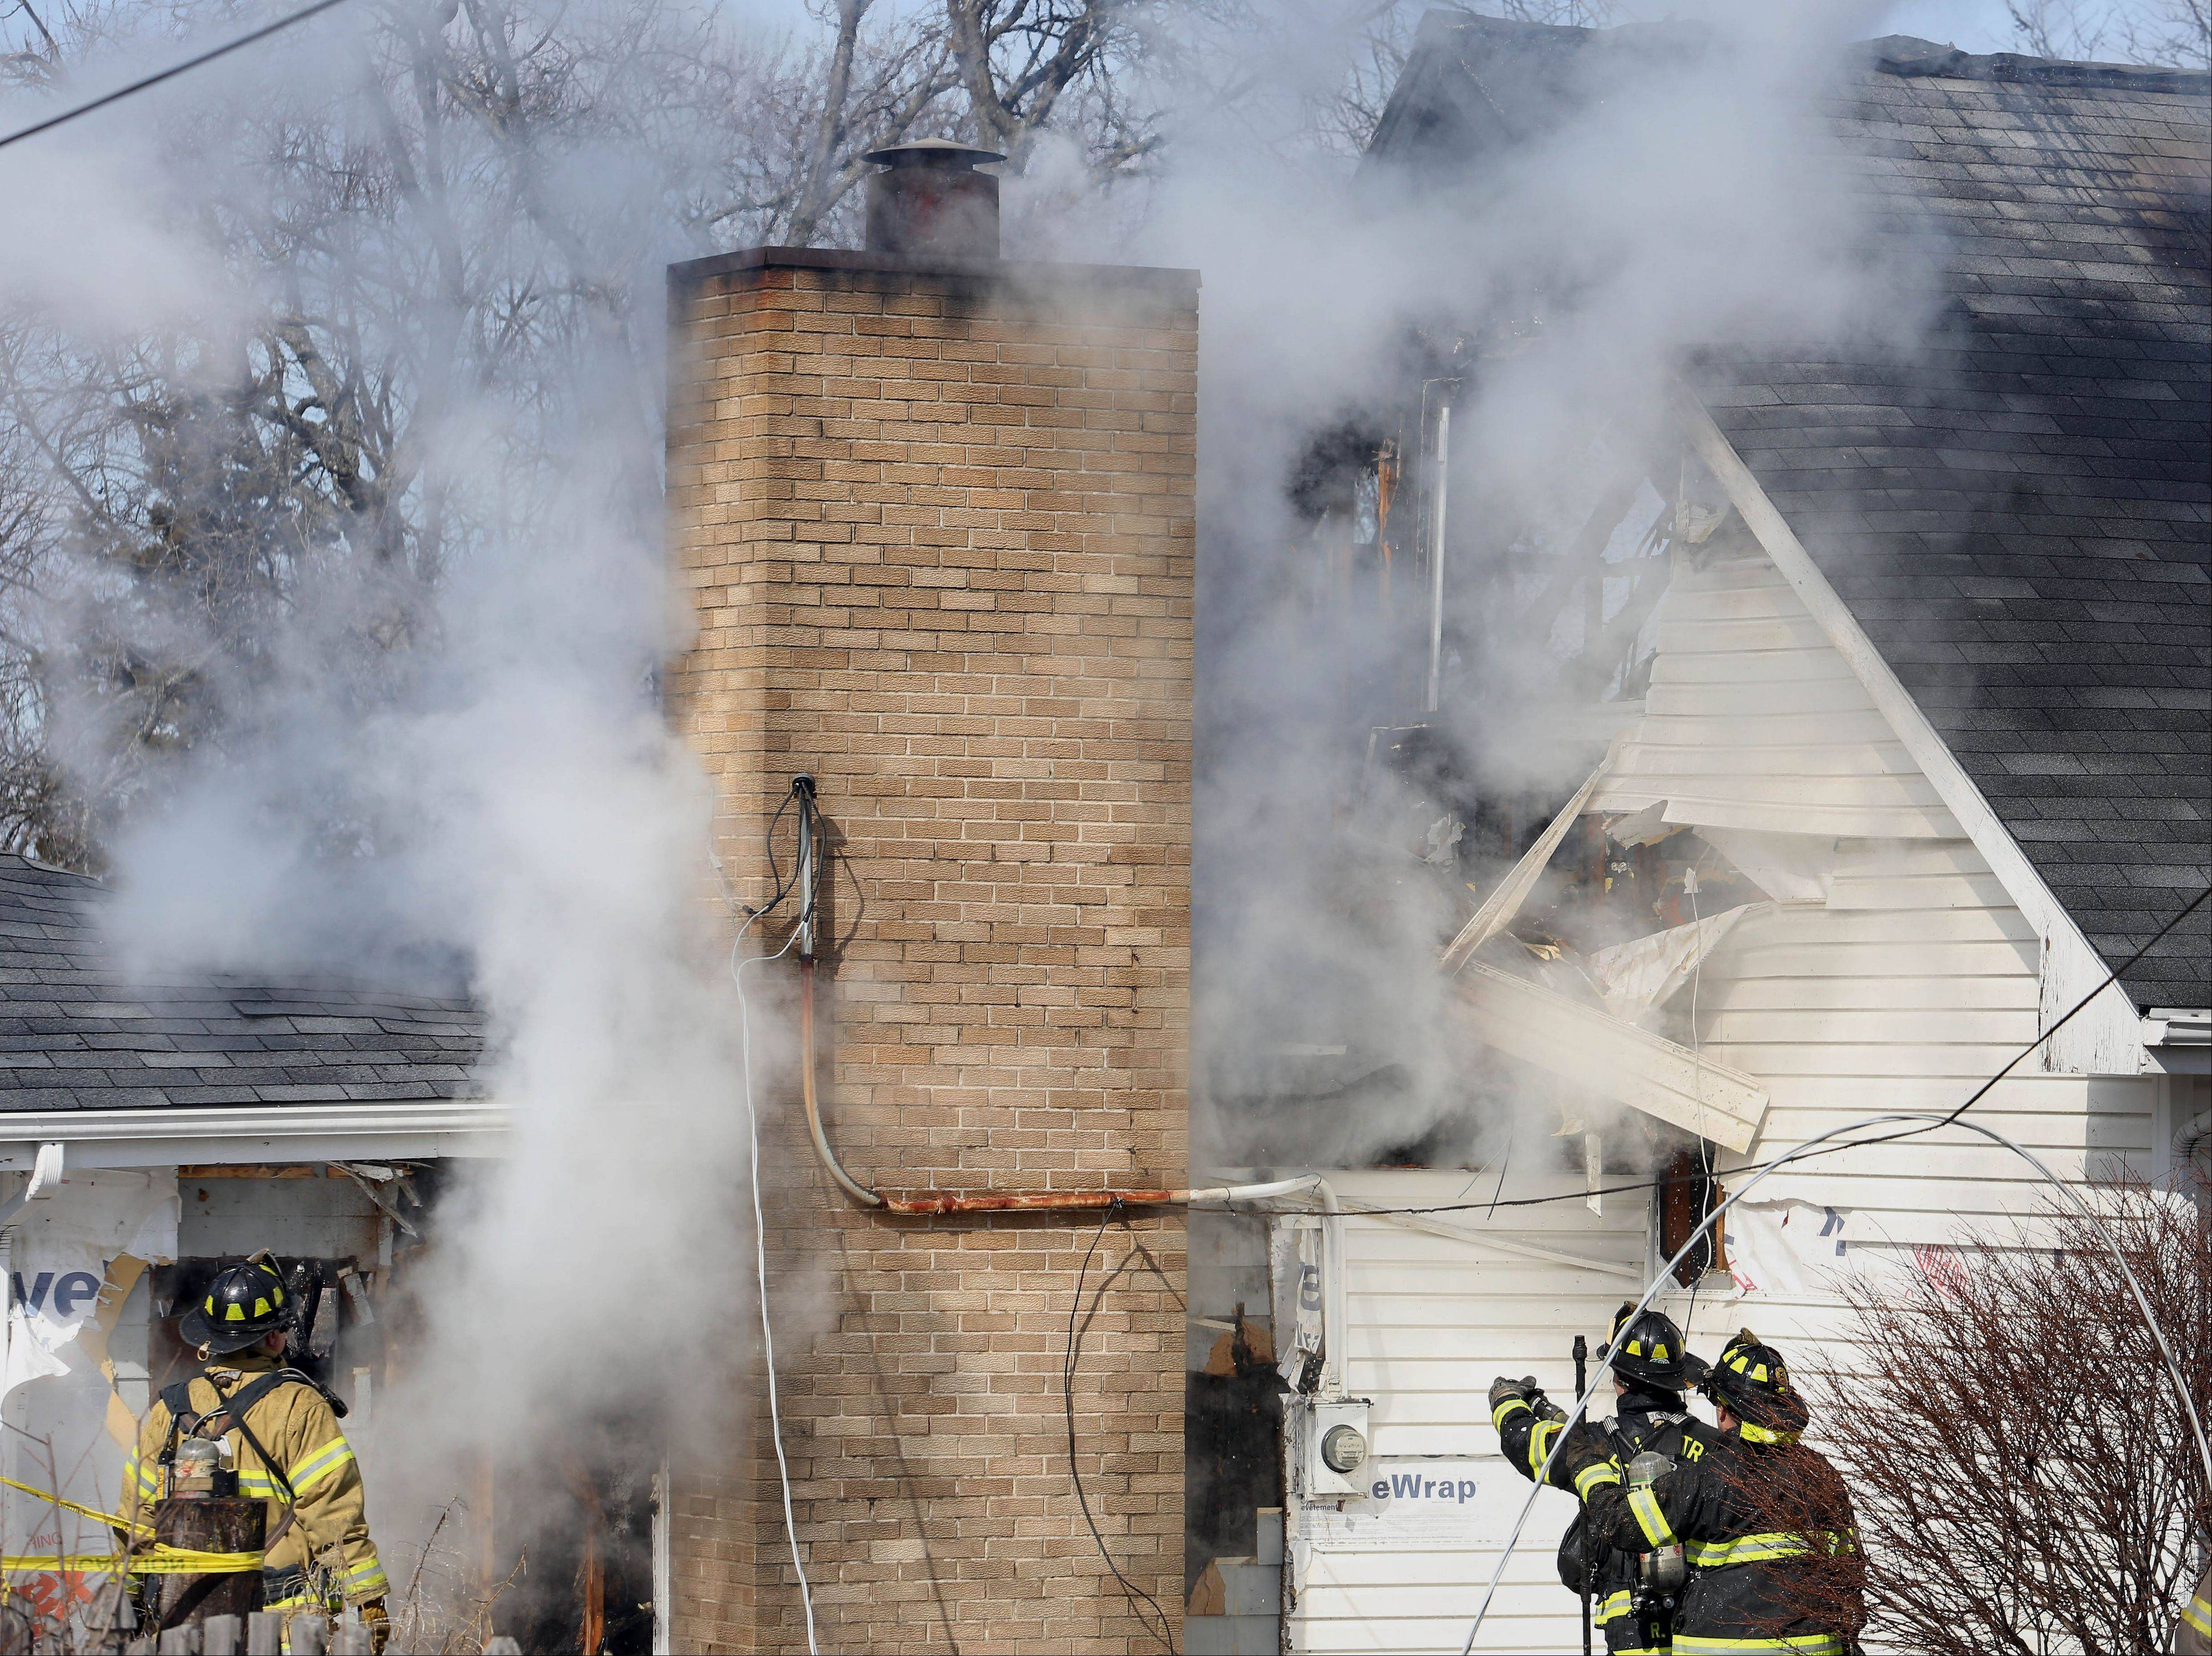 Carol Stream firefighters are trying to determine what sparked a blaze Wednesday morning that caused extensive damage to a house on the 400 block of N. Blackhawk Drive.